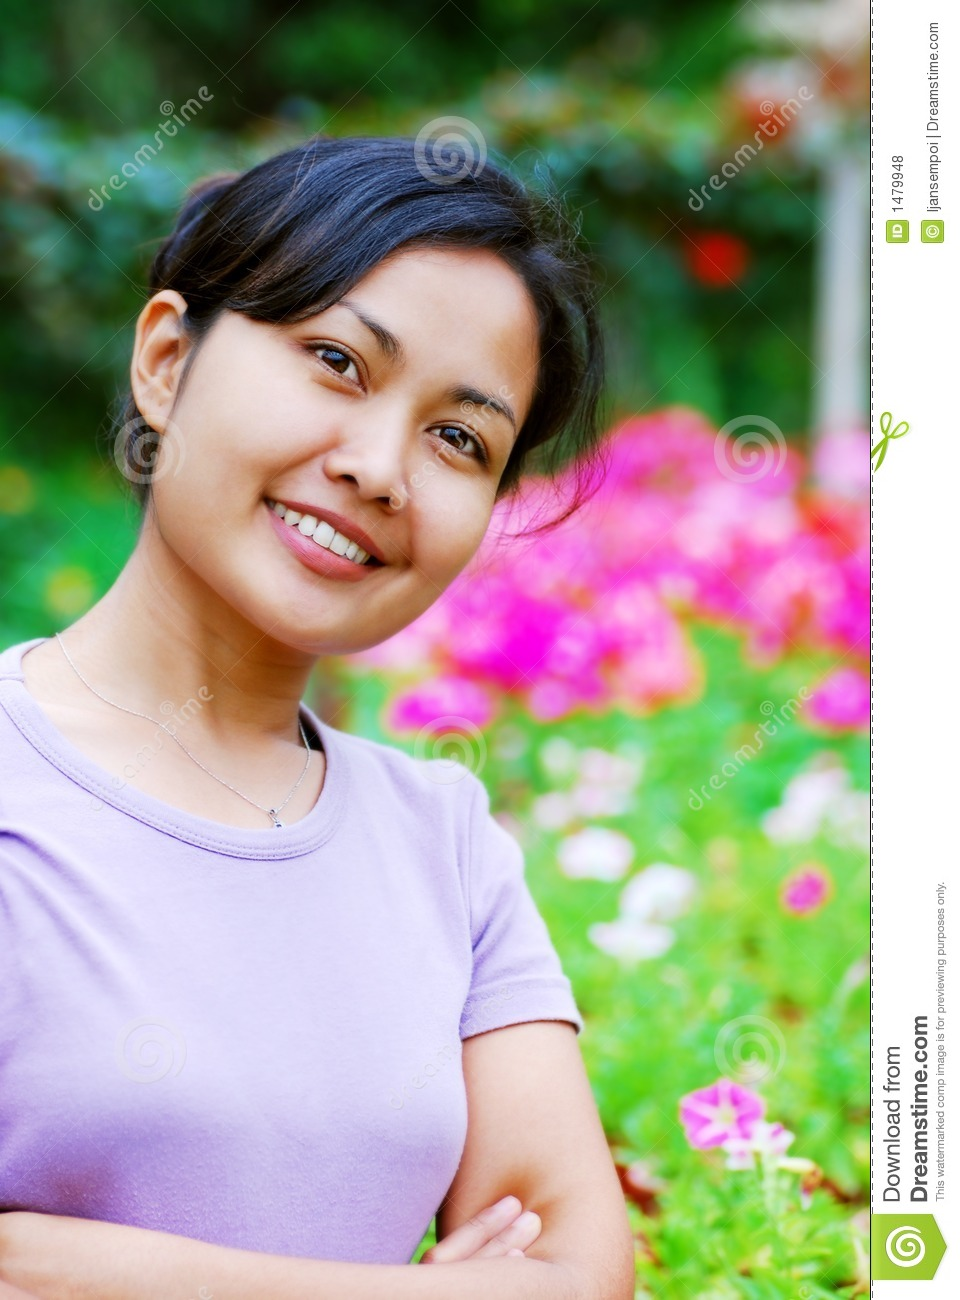 Woman at the flower garden